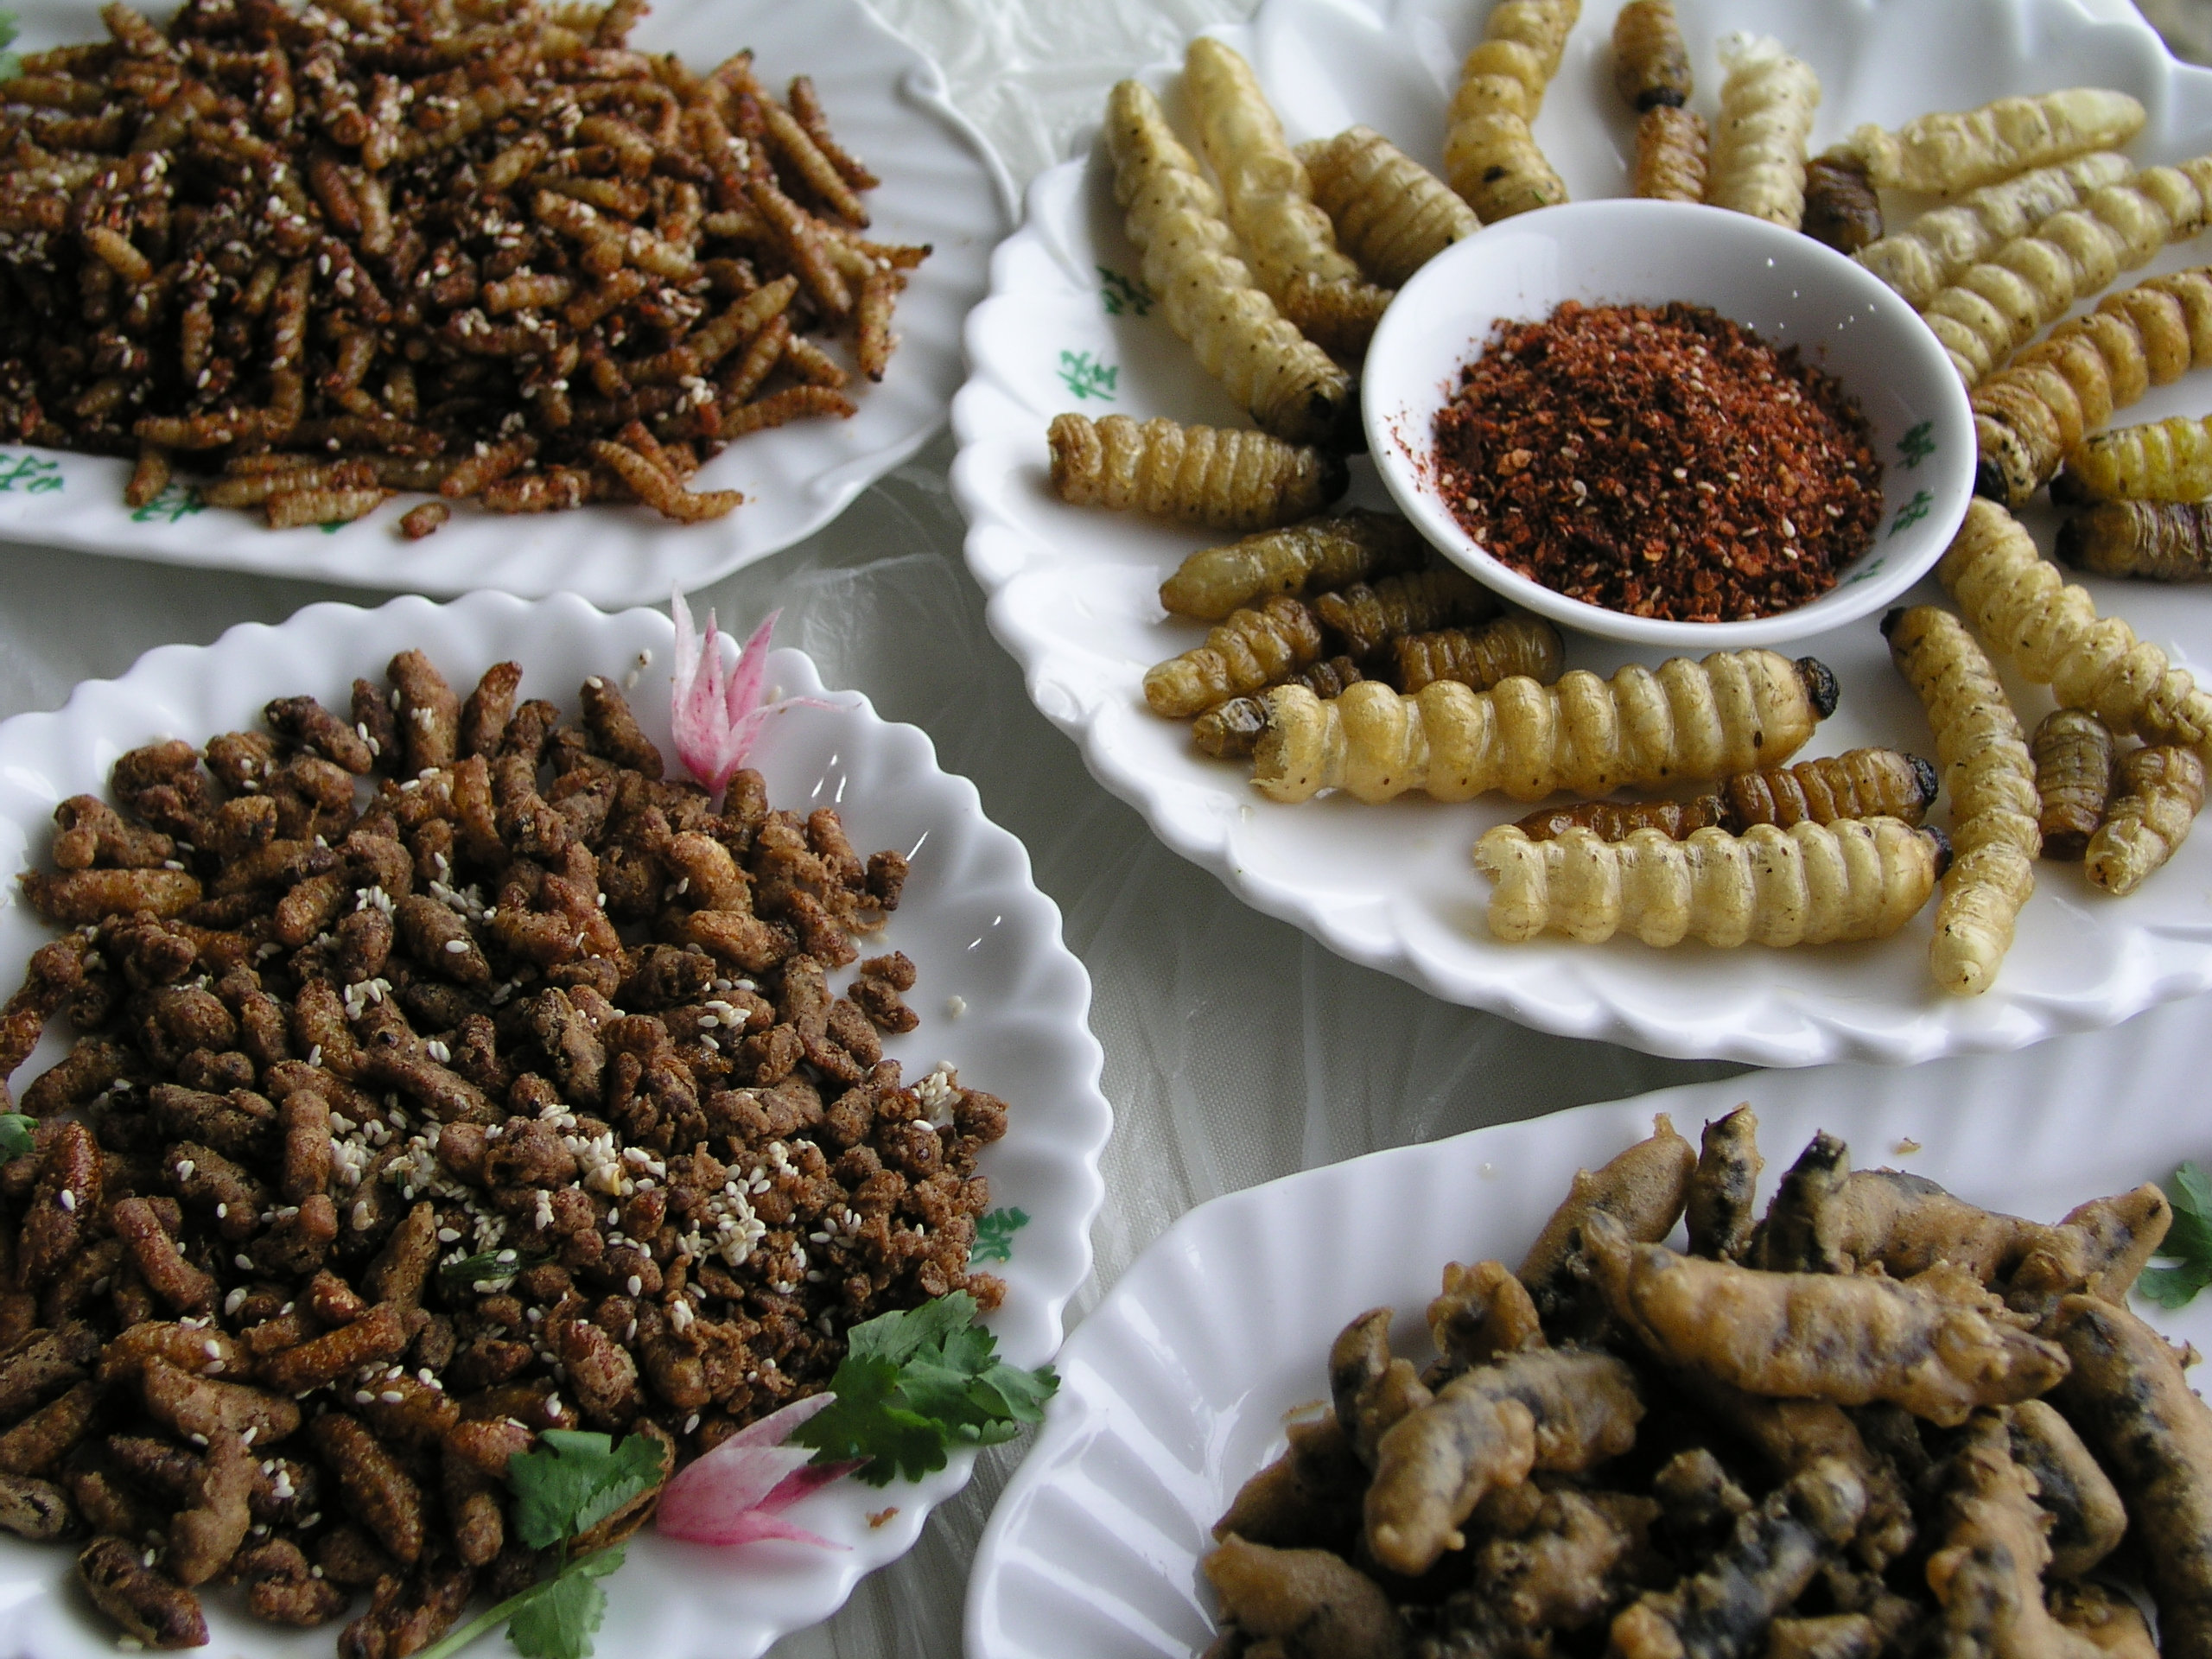 Why not eat insects?  Fuchsia Dunlop